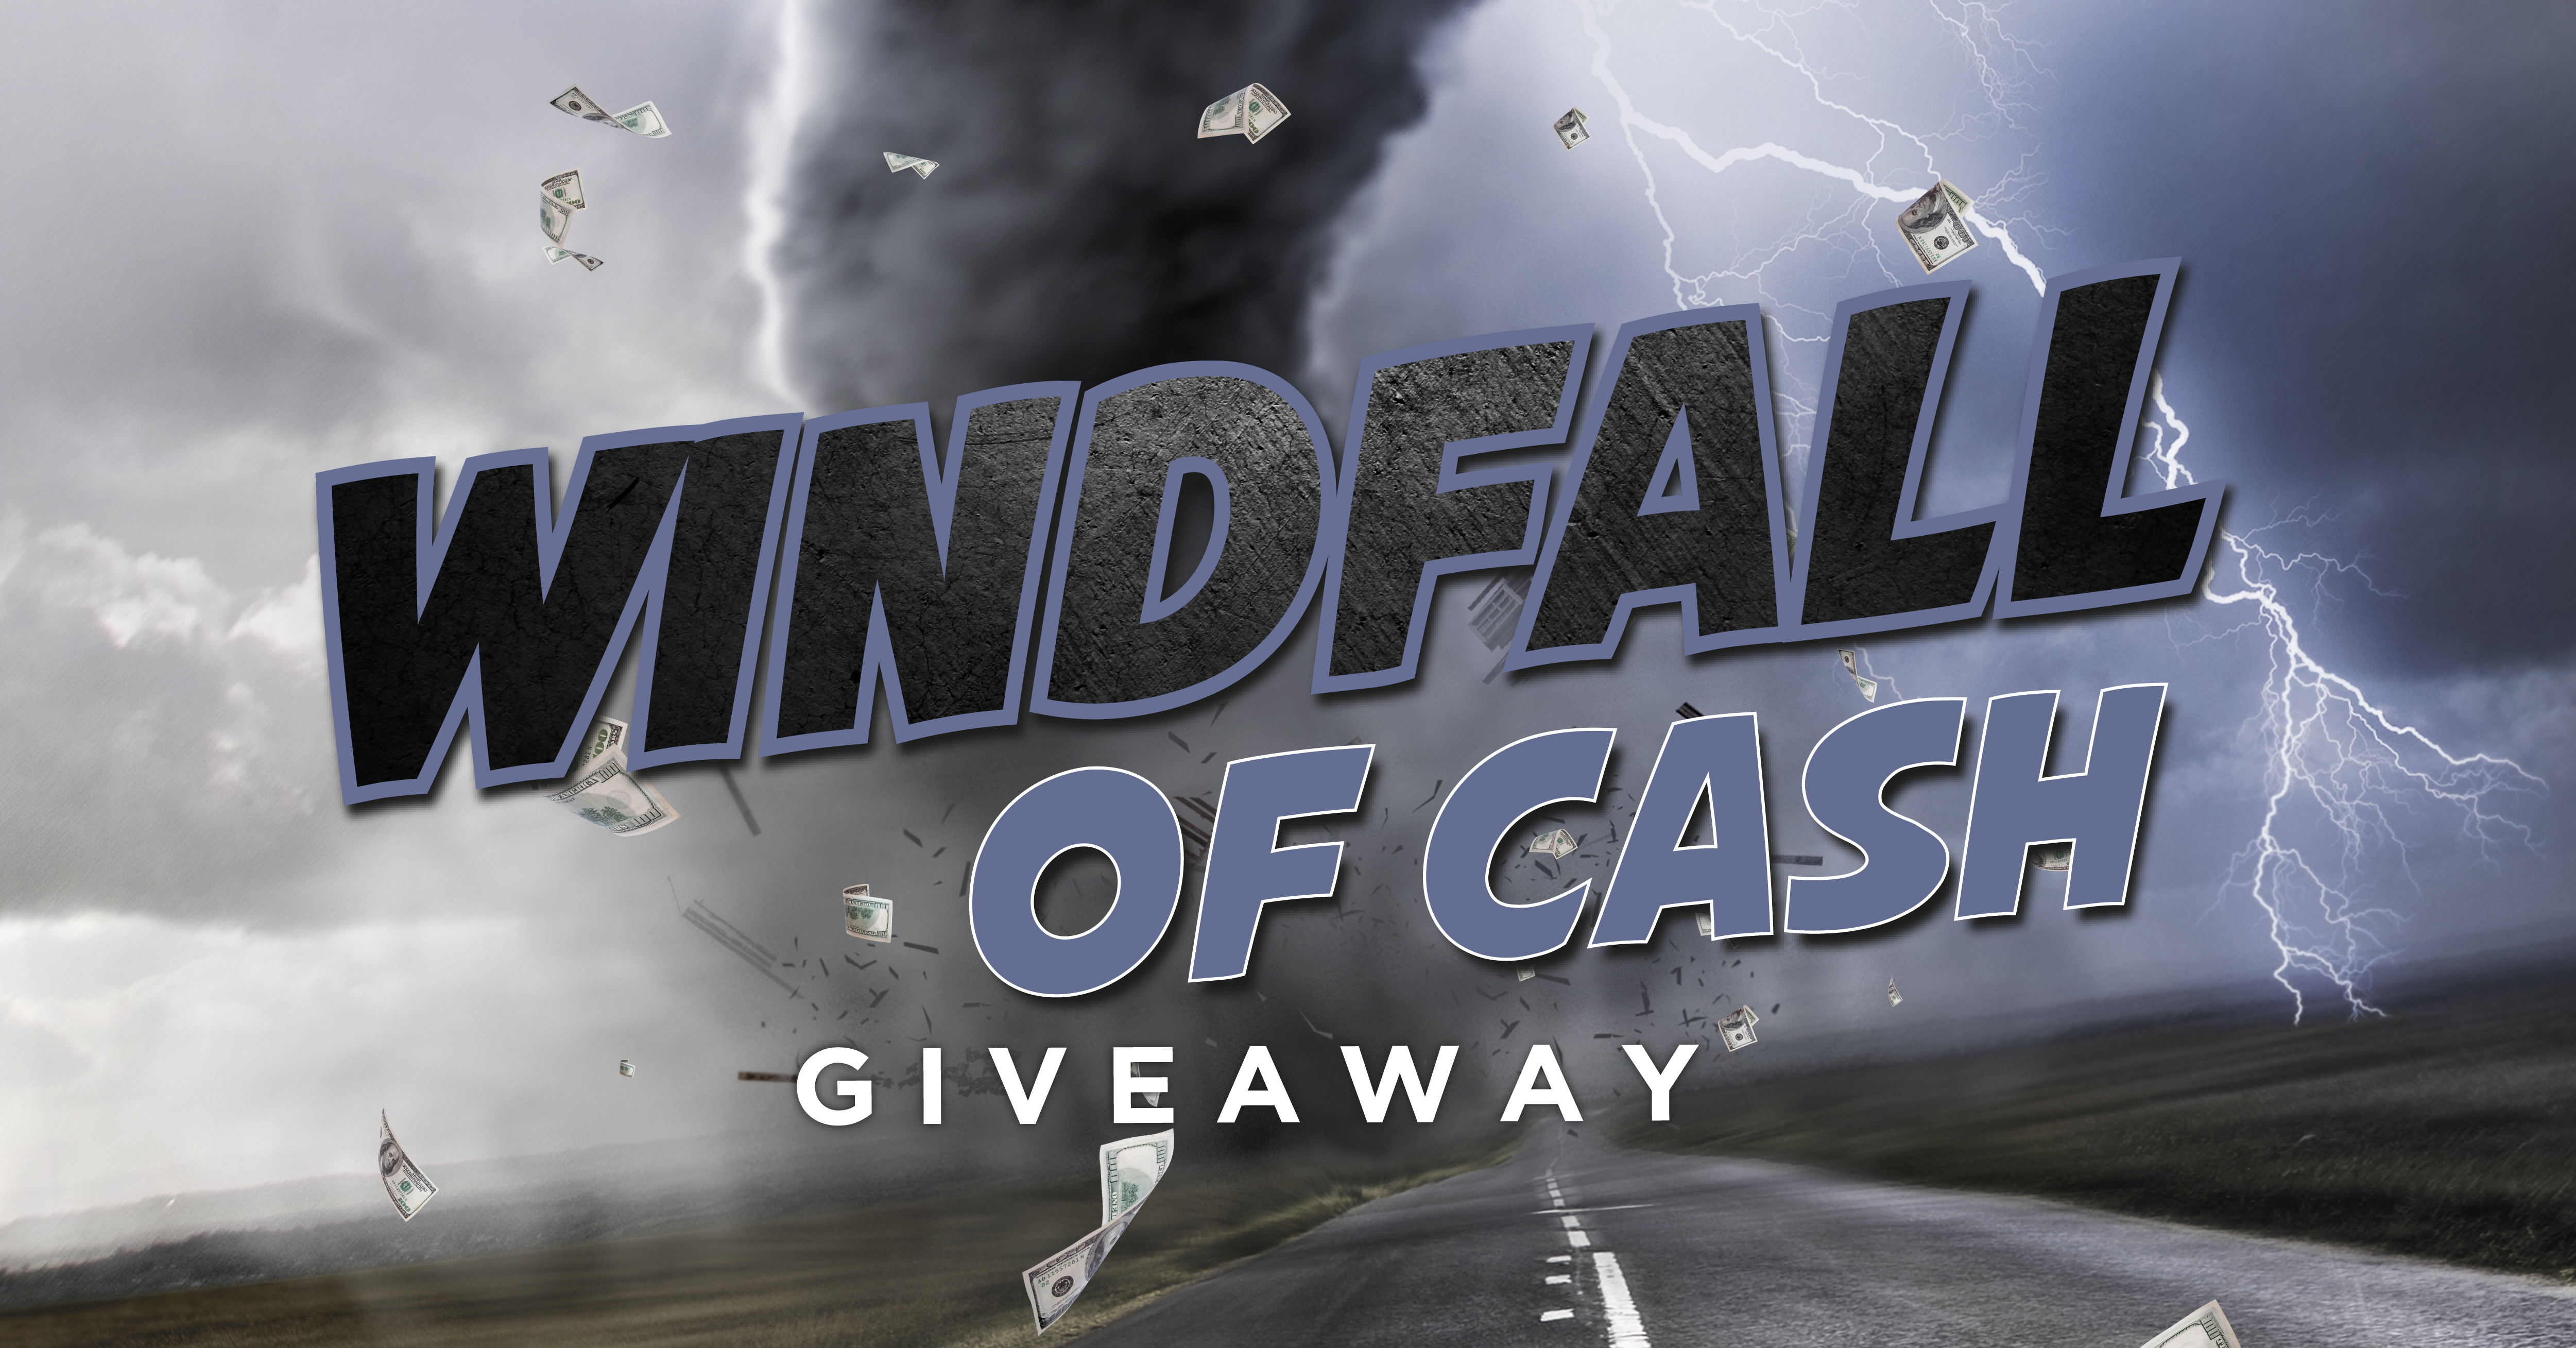 WINDFALL OF CASH GIVEAWAY